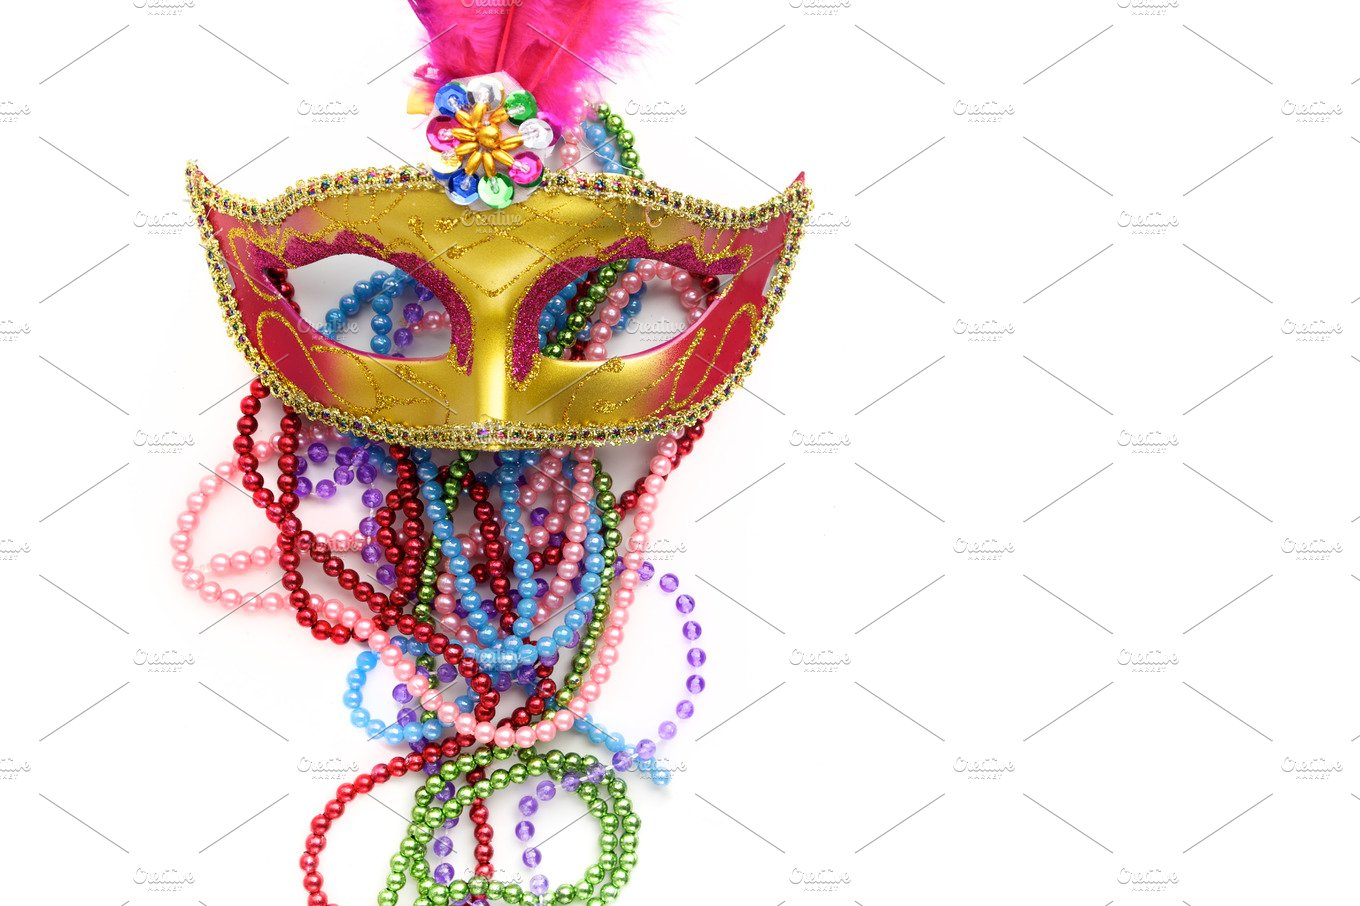 ways the blog easy a inspired have carnival gras wedding to bride beads mardi nola